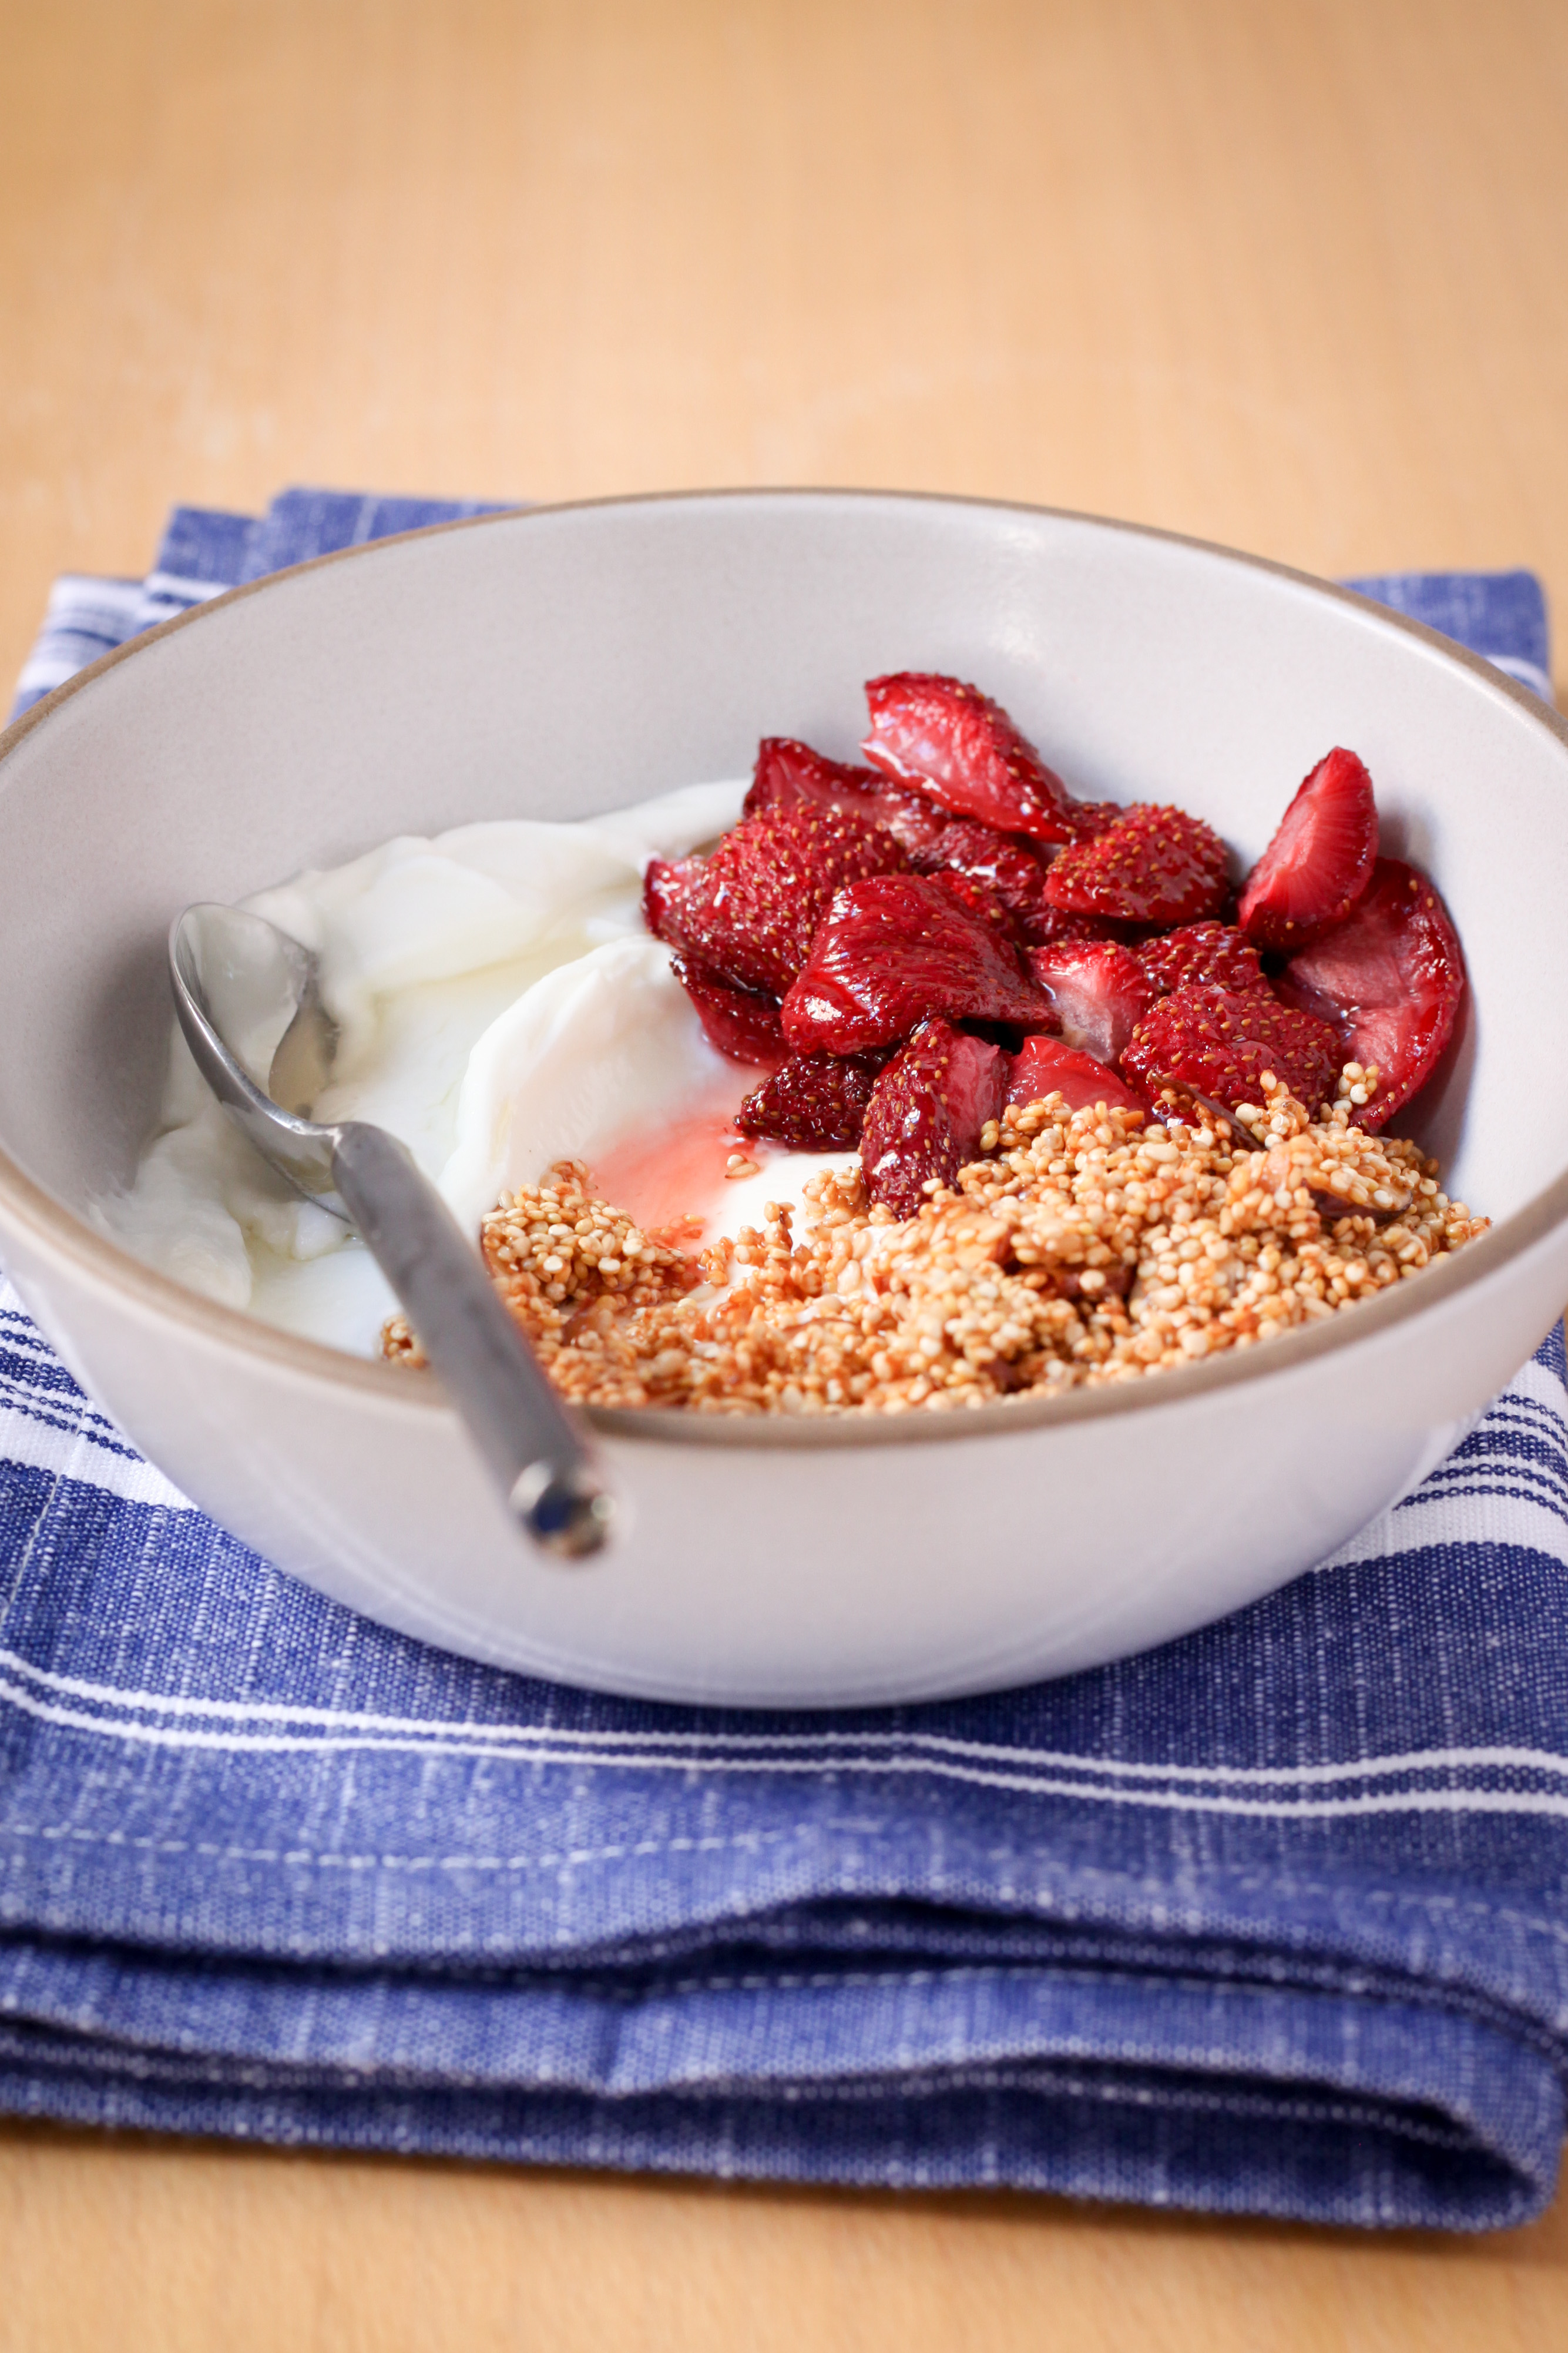 Greek Yogurt With Quinoa Crunch and Roasted Strawberries | amodesfeast.com | @amodestfeast